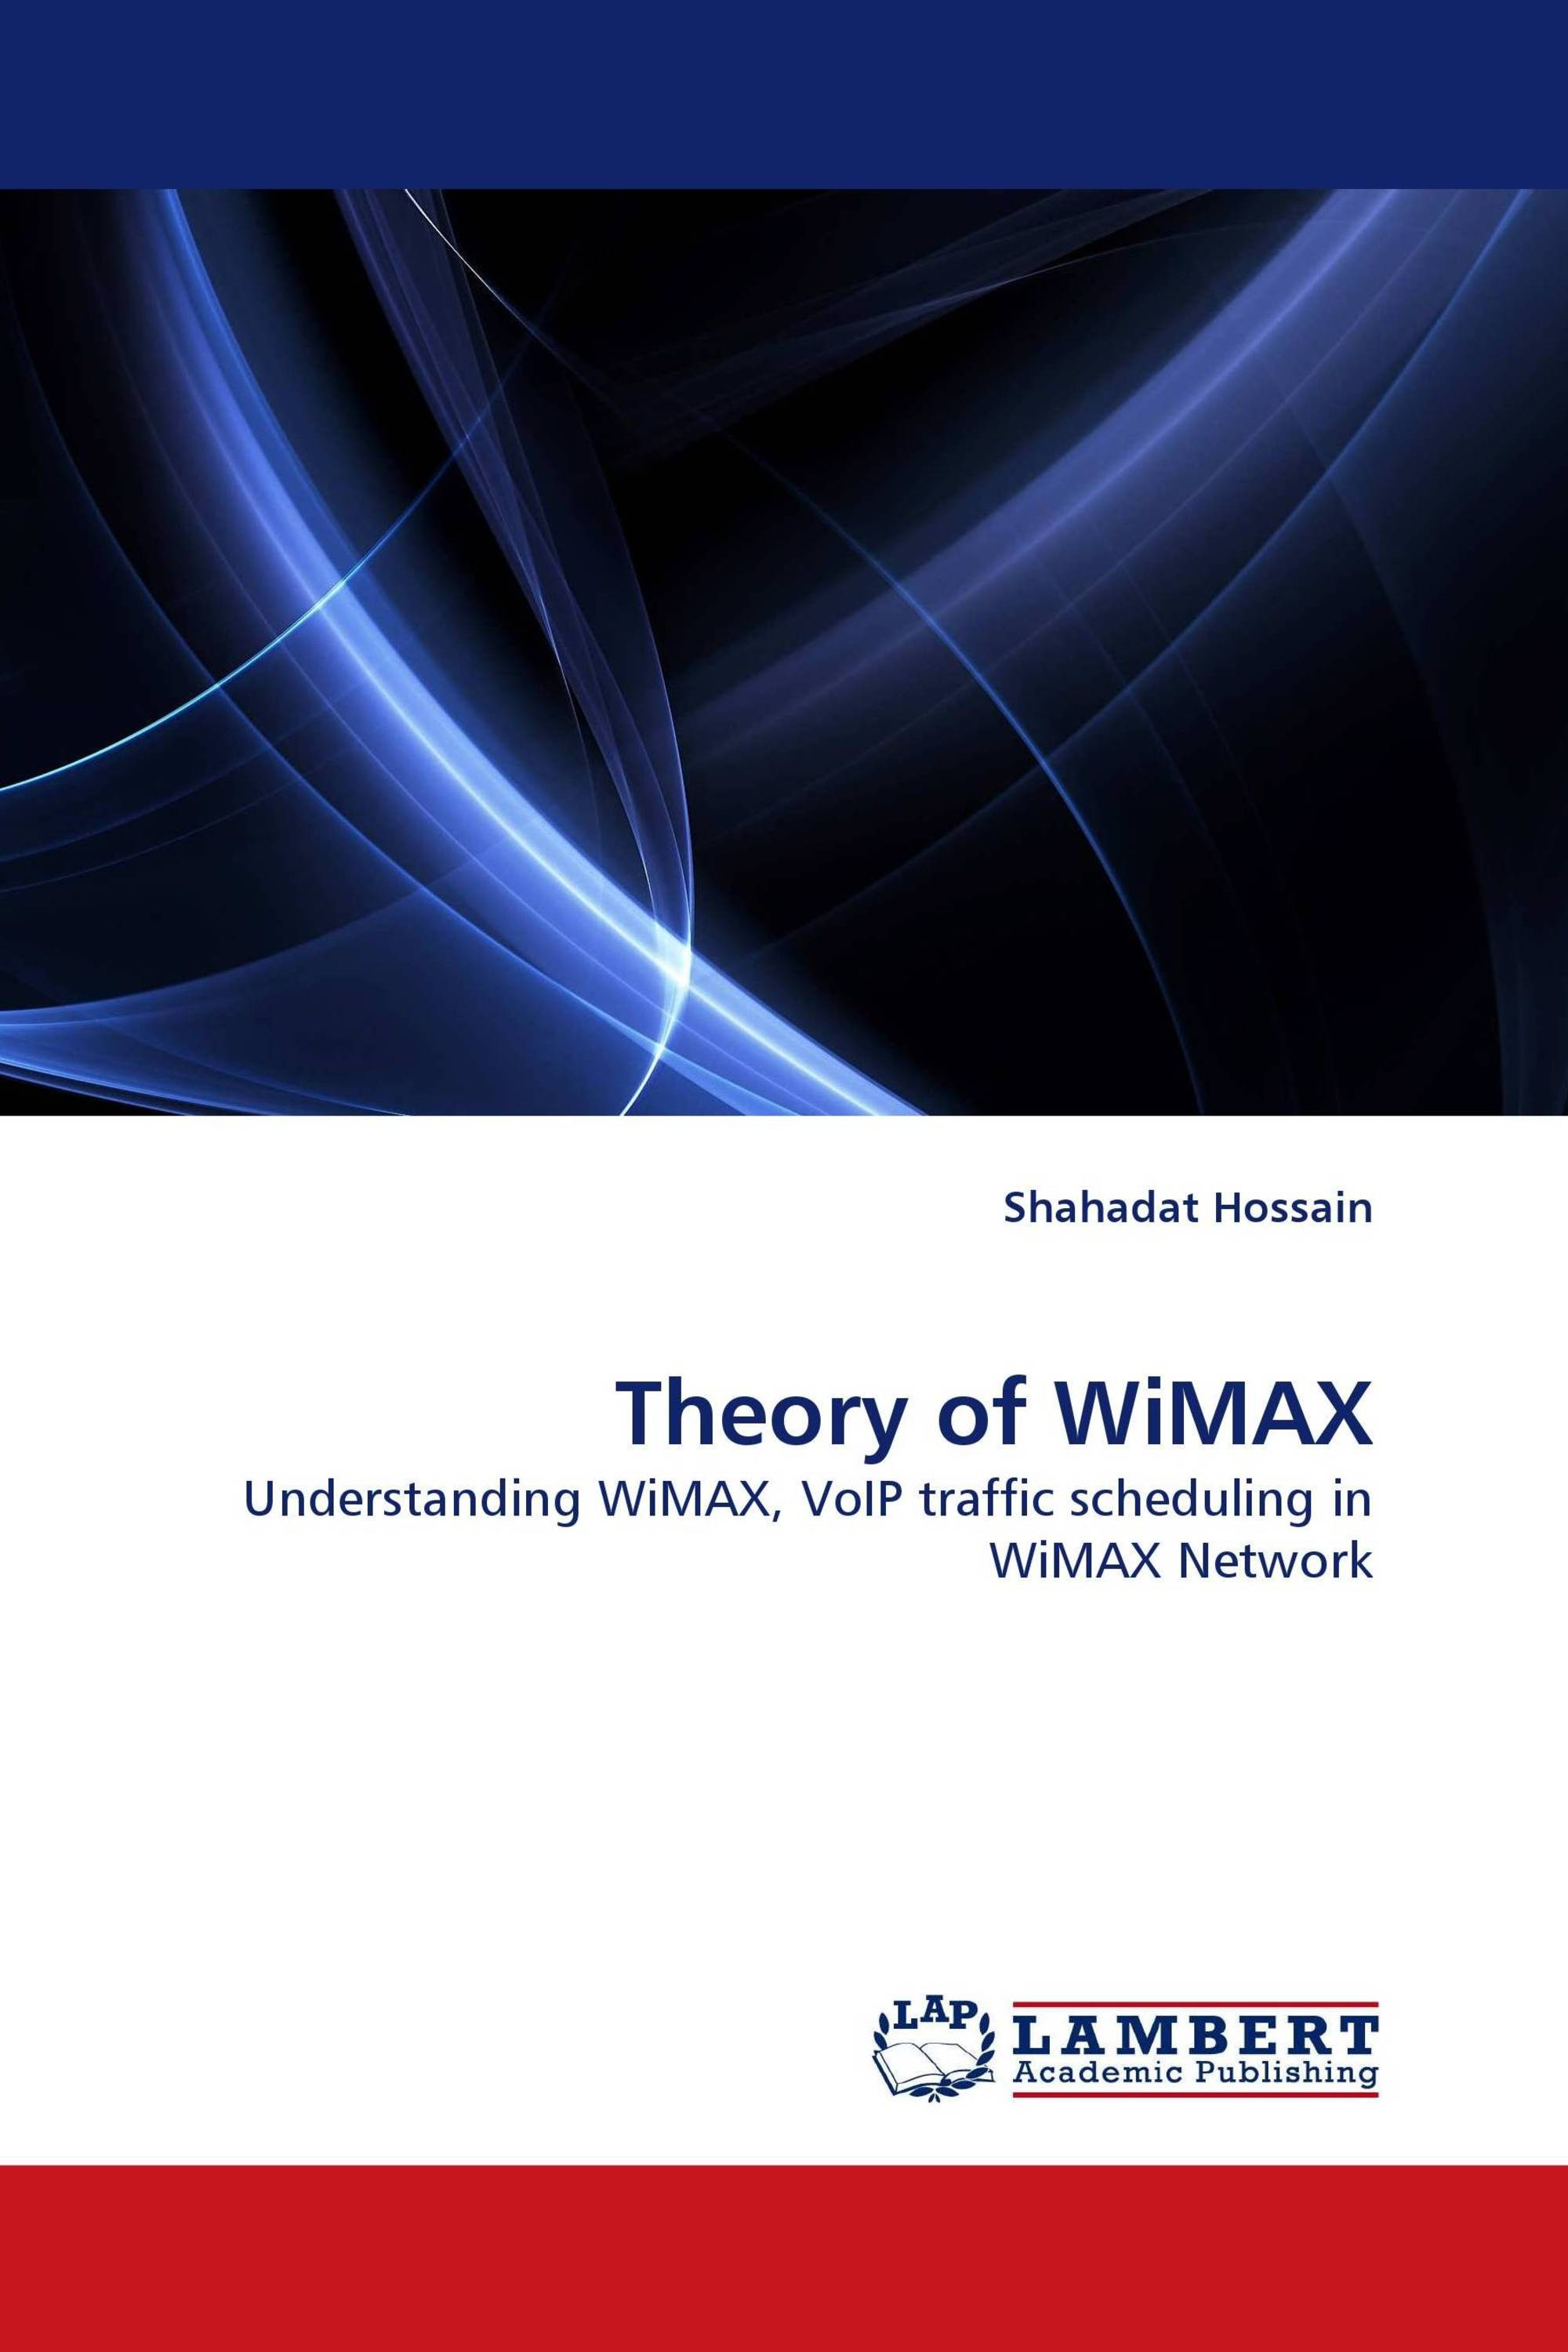 Theory of WiMAX